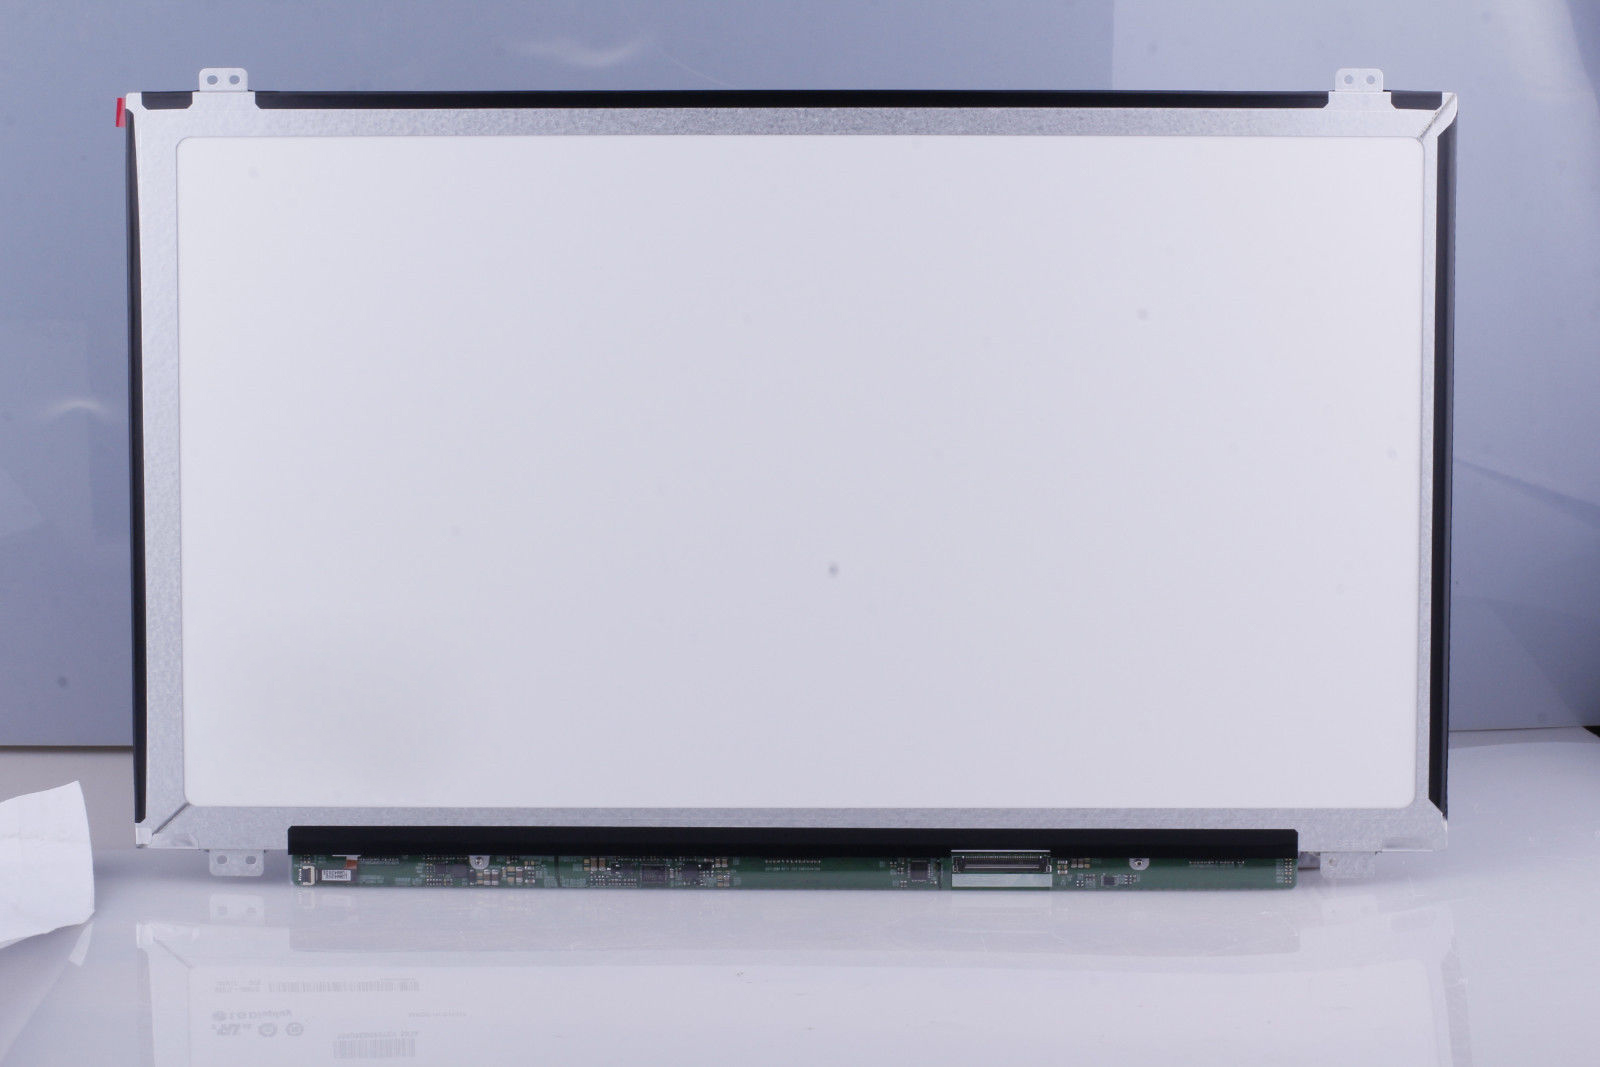 QuYing Laptop LCD Screen for HP Compaq ProBook 455 G2 J5P31UT (15.6 inch 1366x768 30Pin) quying laptop lcd screen for hp compaq hp probook 4545s 4540s 4535s 4530s 4525s 4515s series